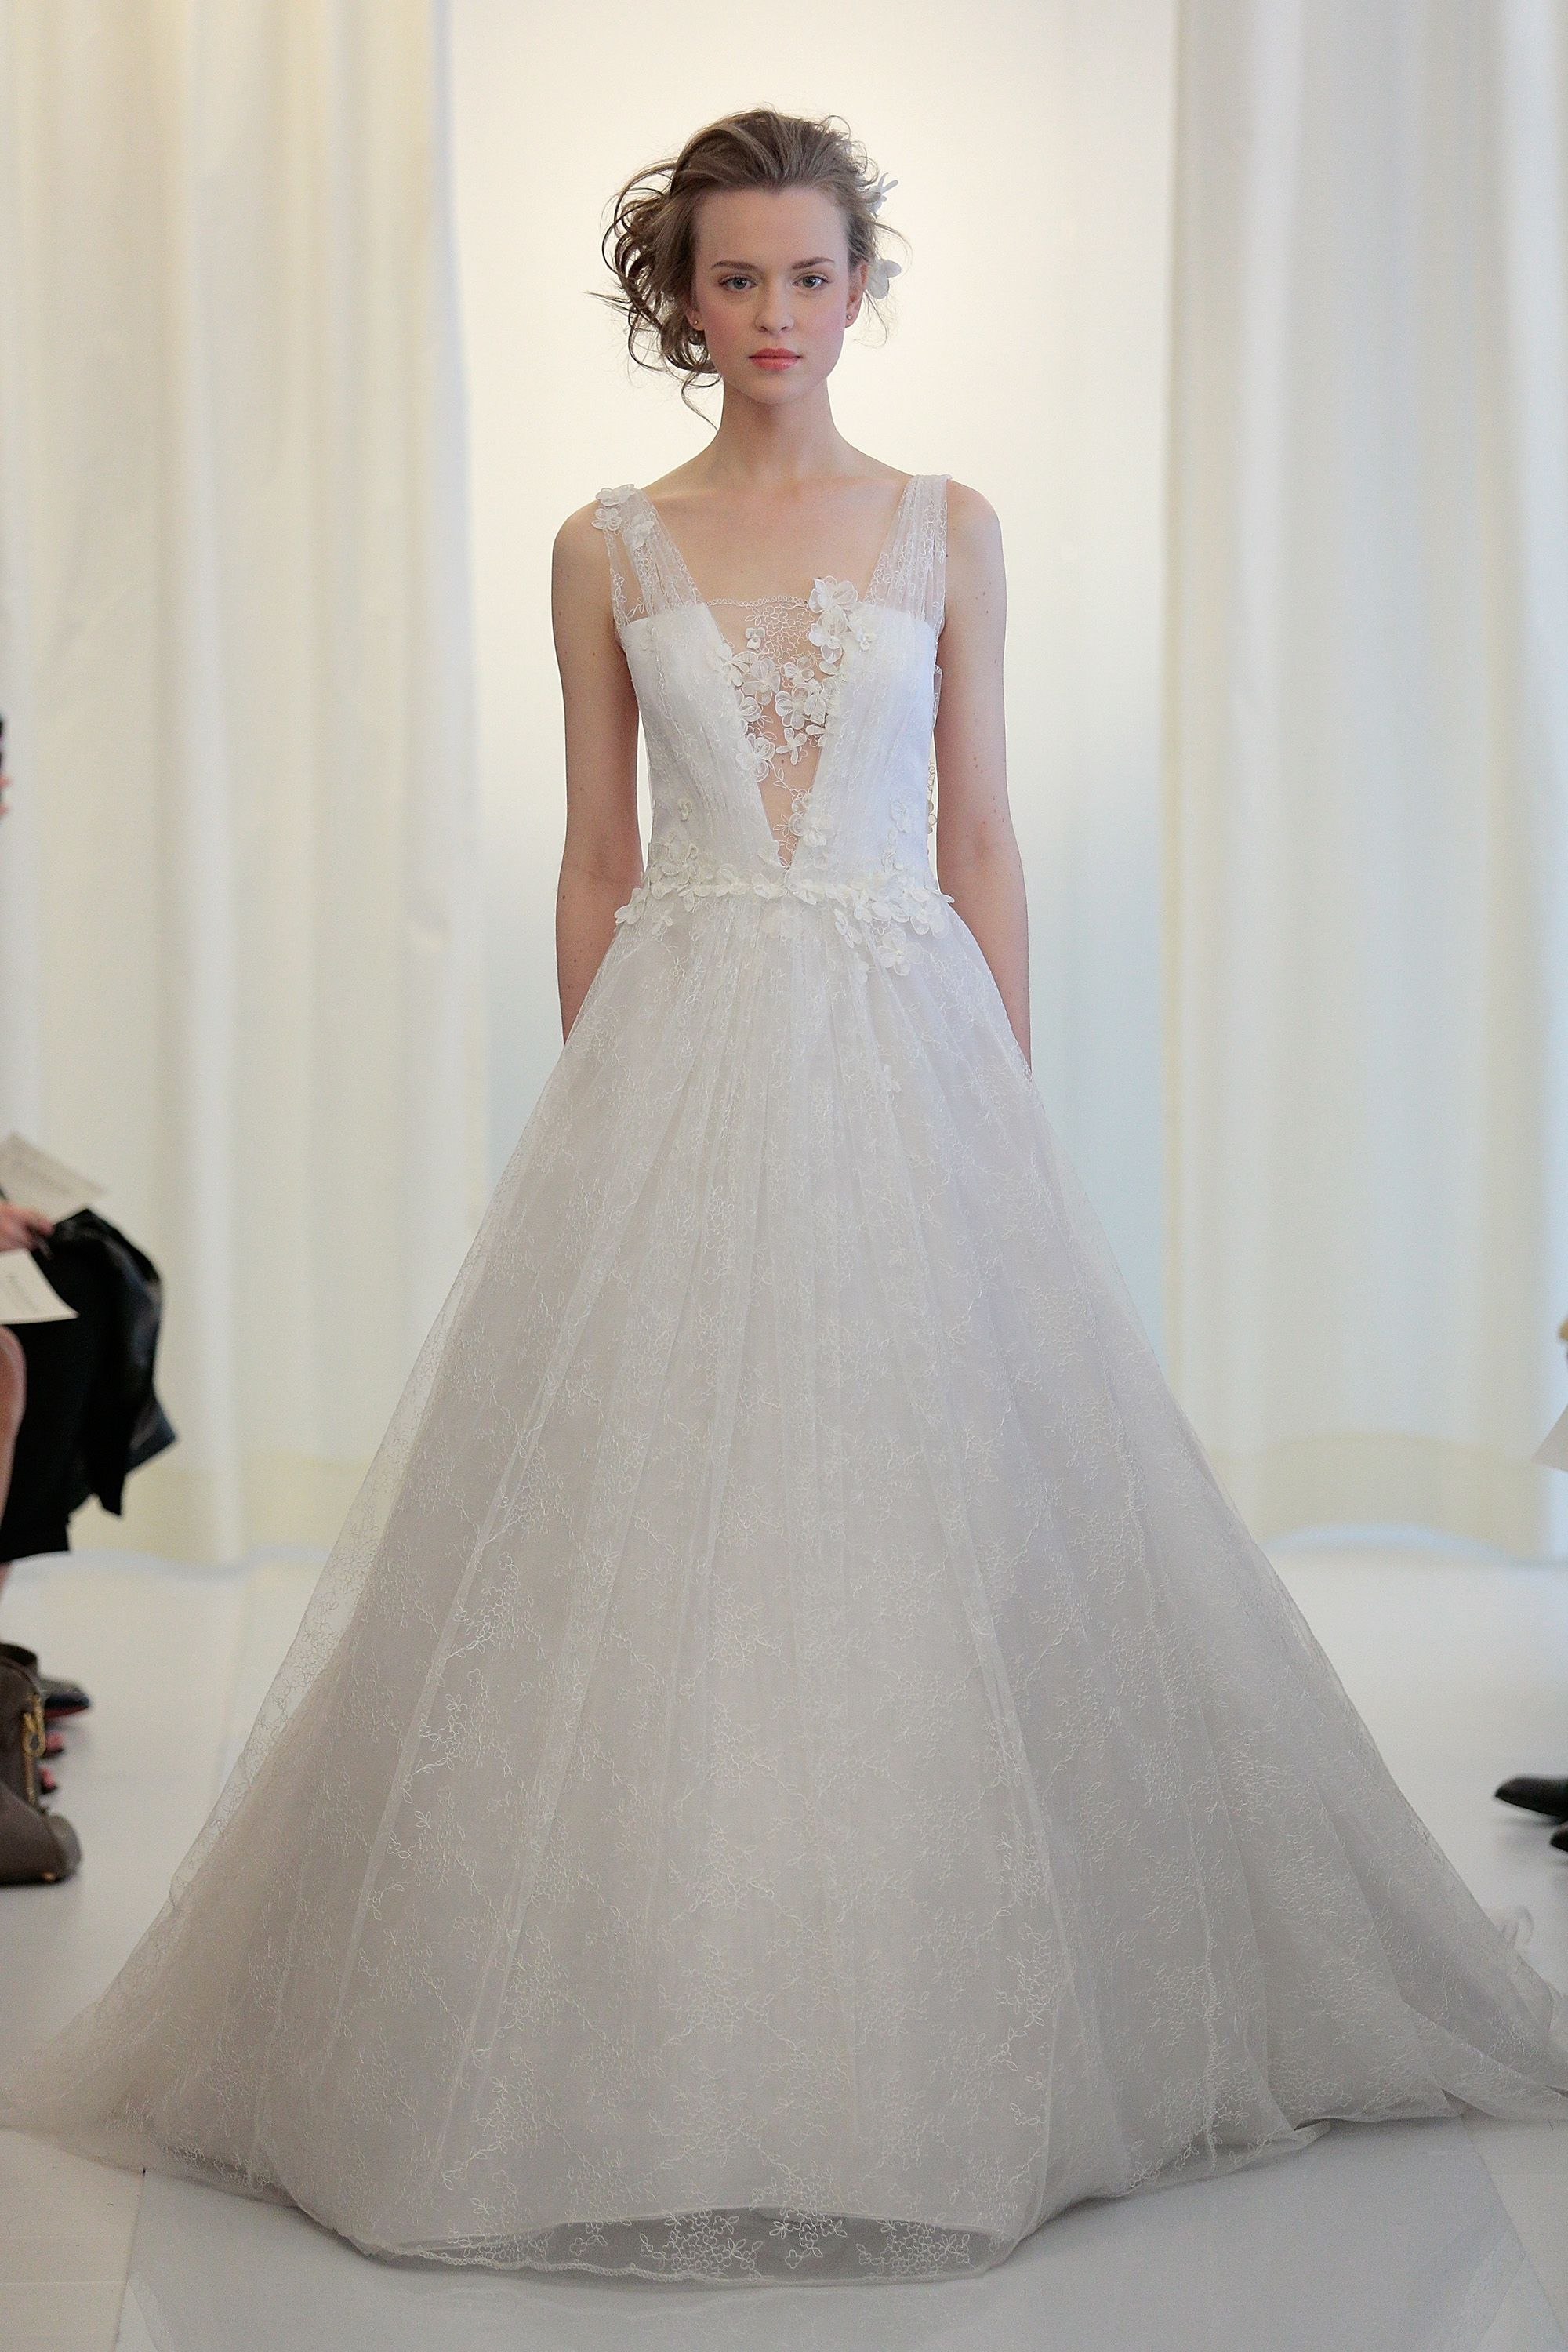 7 Fall 2020 Bridal Fashion Trends Hot Off the Runways